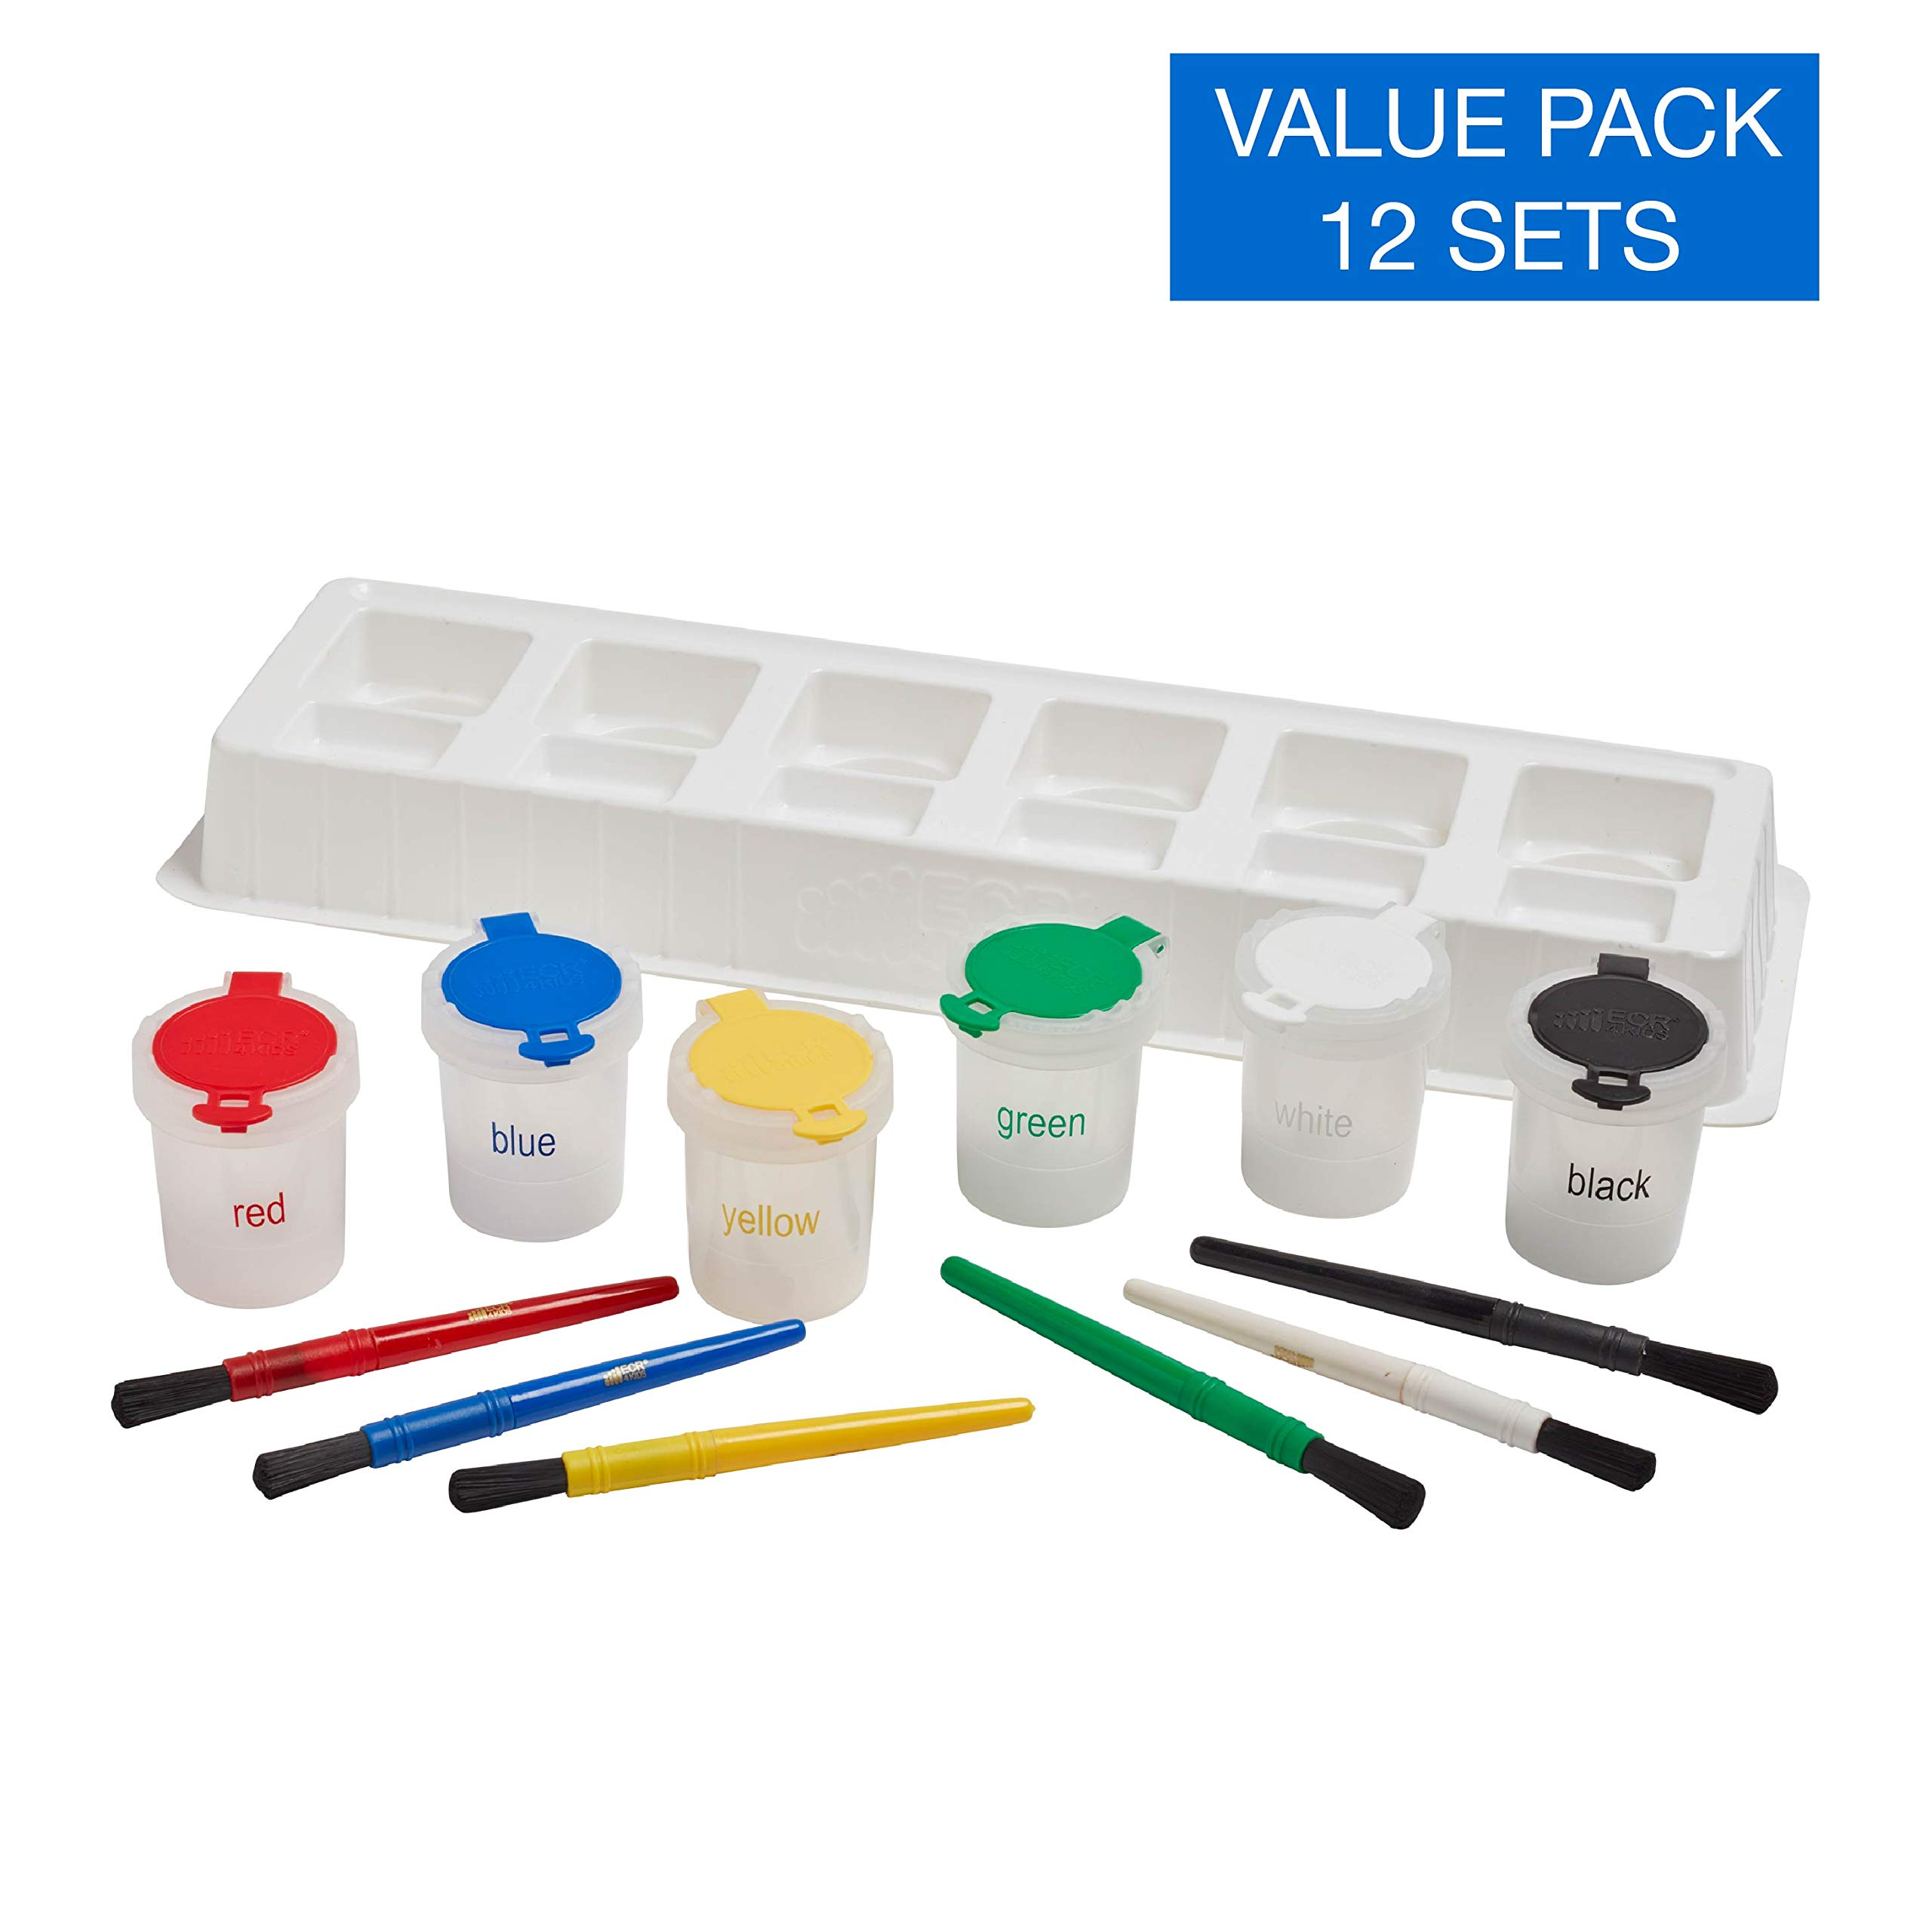 ECR4Kids No-Spill Trilingual Paint Cups Set - Includes Cups, Paint Brushes and Bonus Tray - Art Supplies for Kids and Toddlers (13-Piece Kit), Small by ECR4Kids